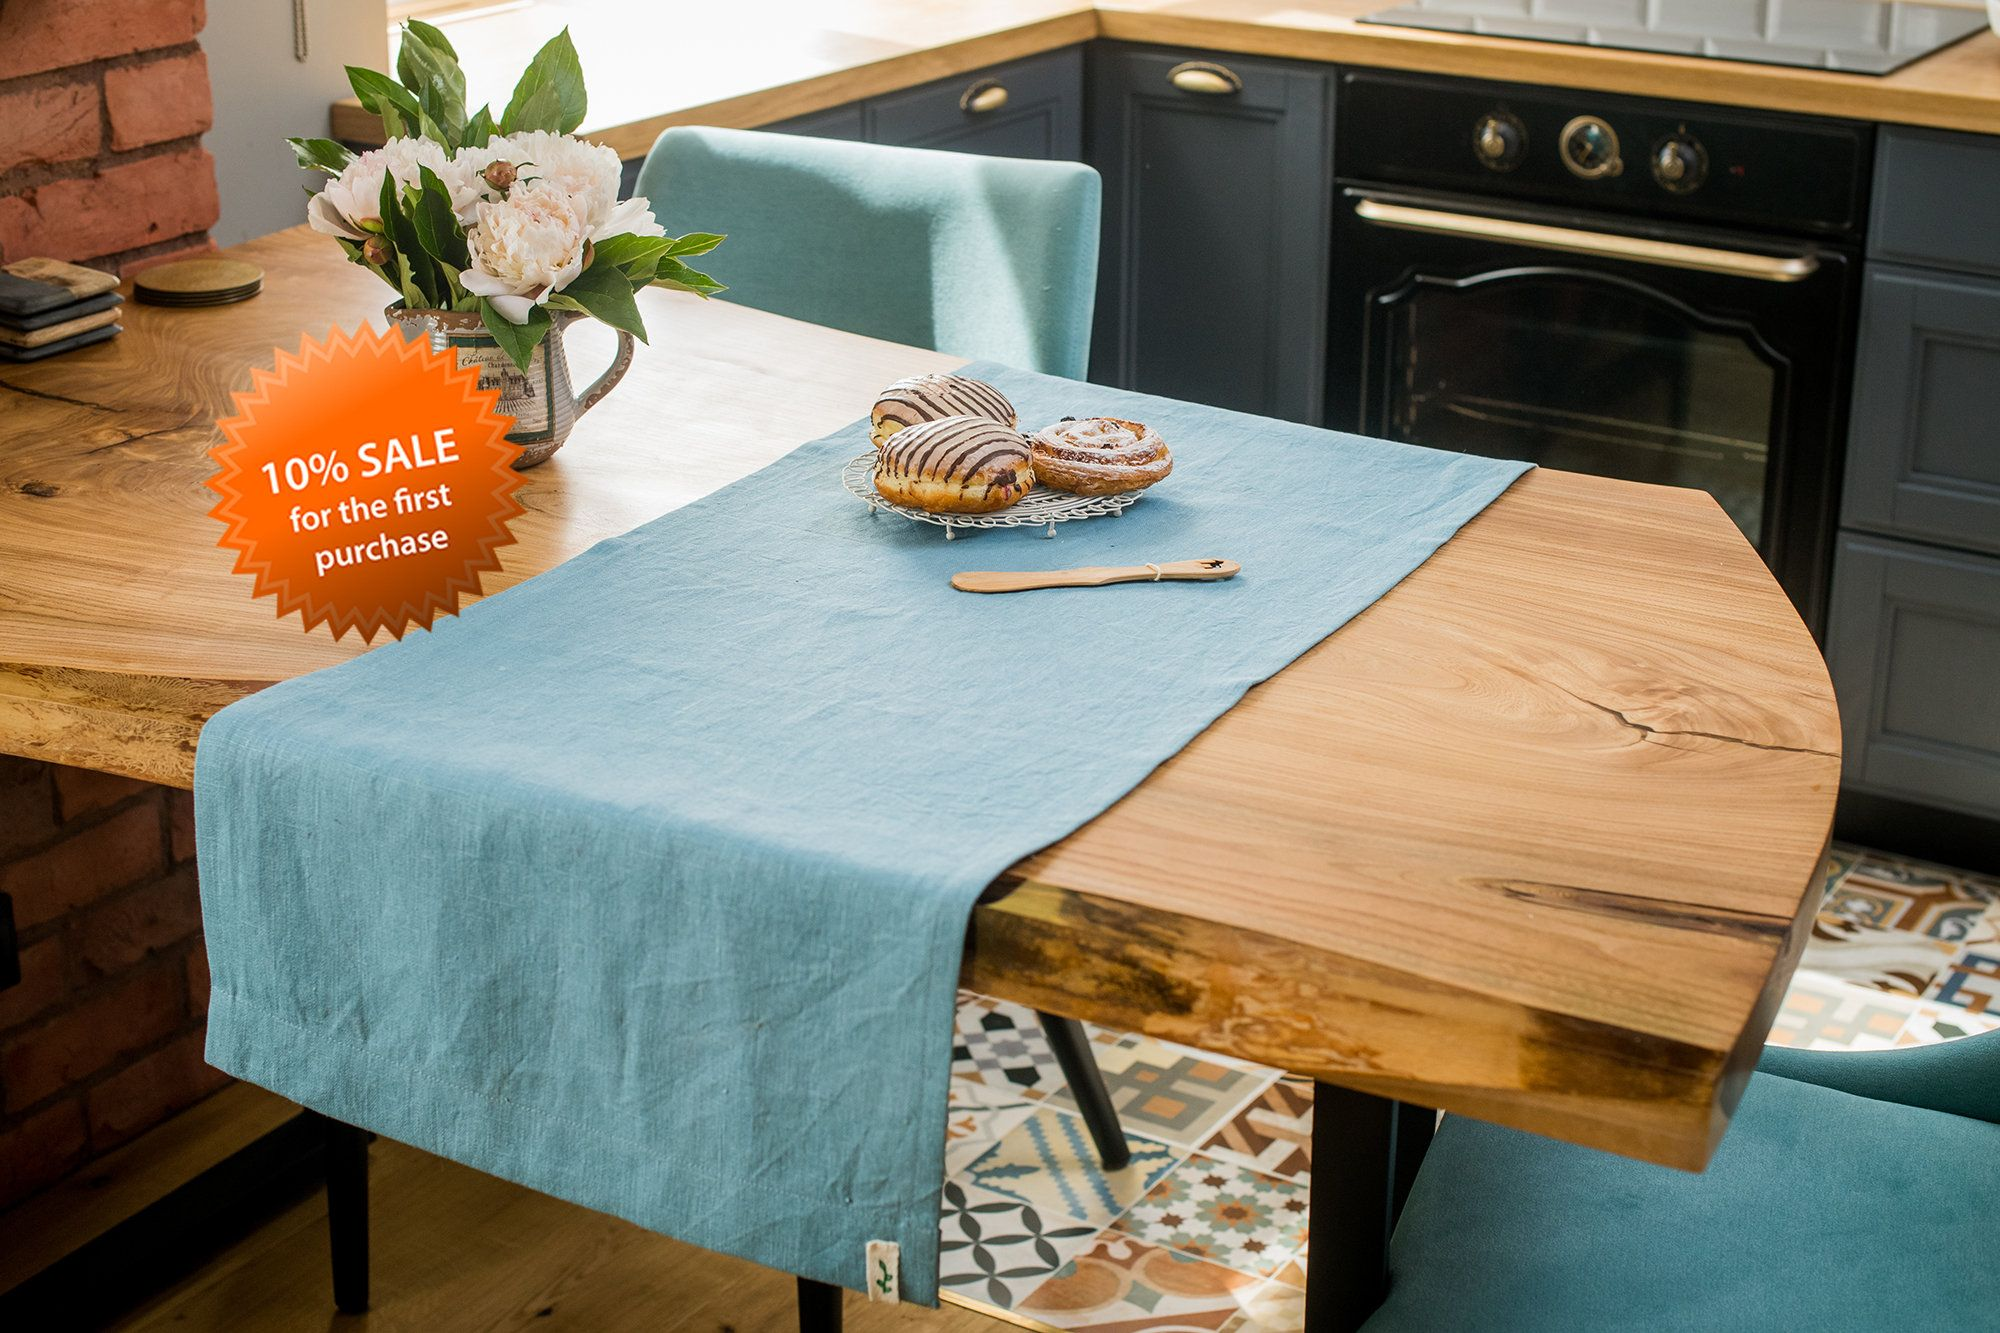 Blue table runner table cloth blue table runner kitchen decor ideas